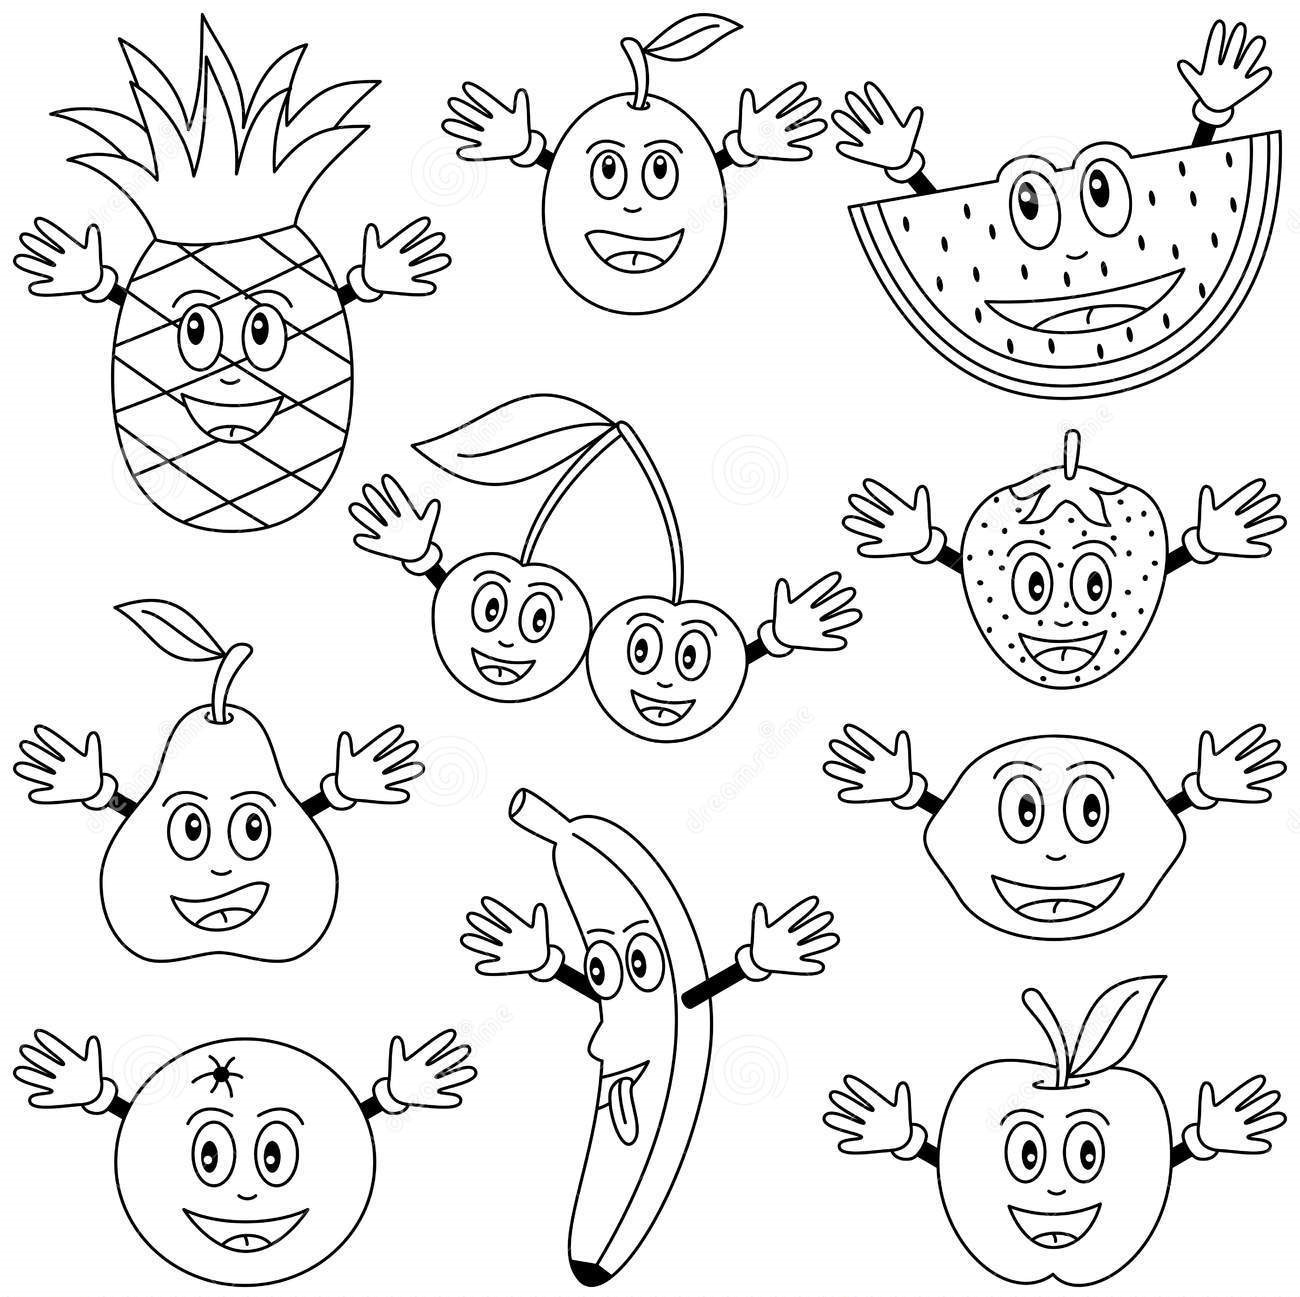 fruits images for coloring free printable fruit coloring pages for kids coloring for fruits images